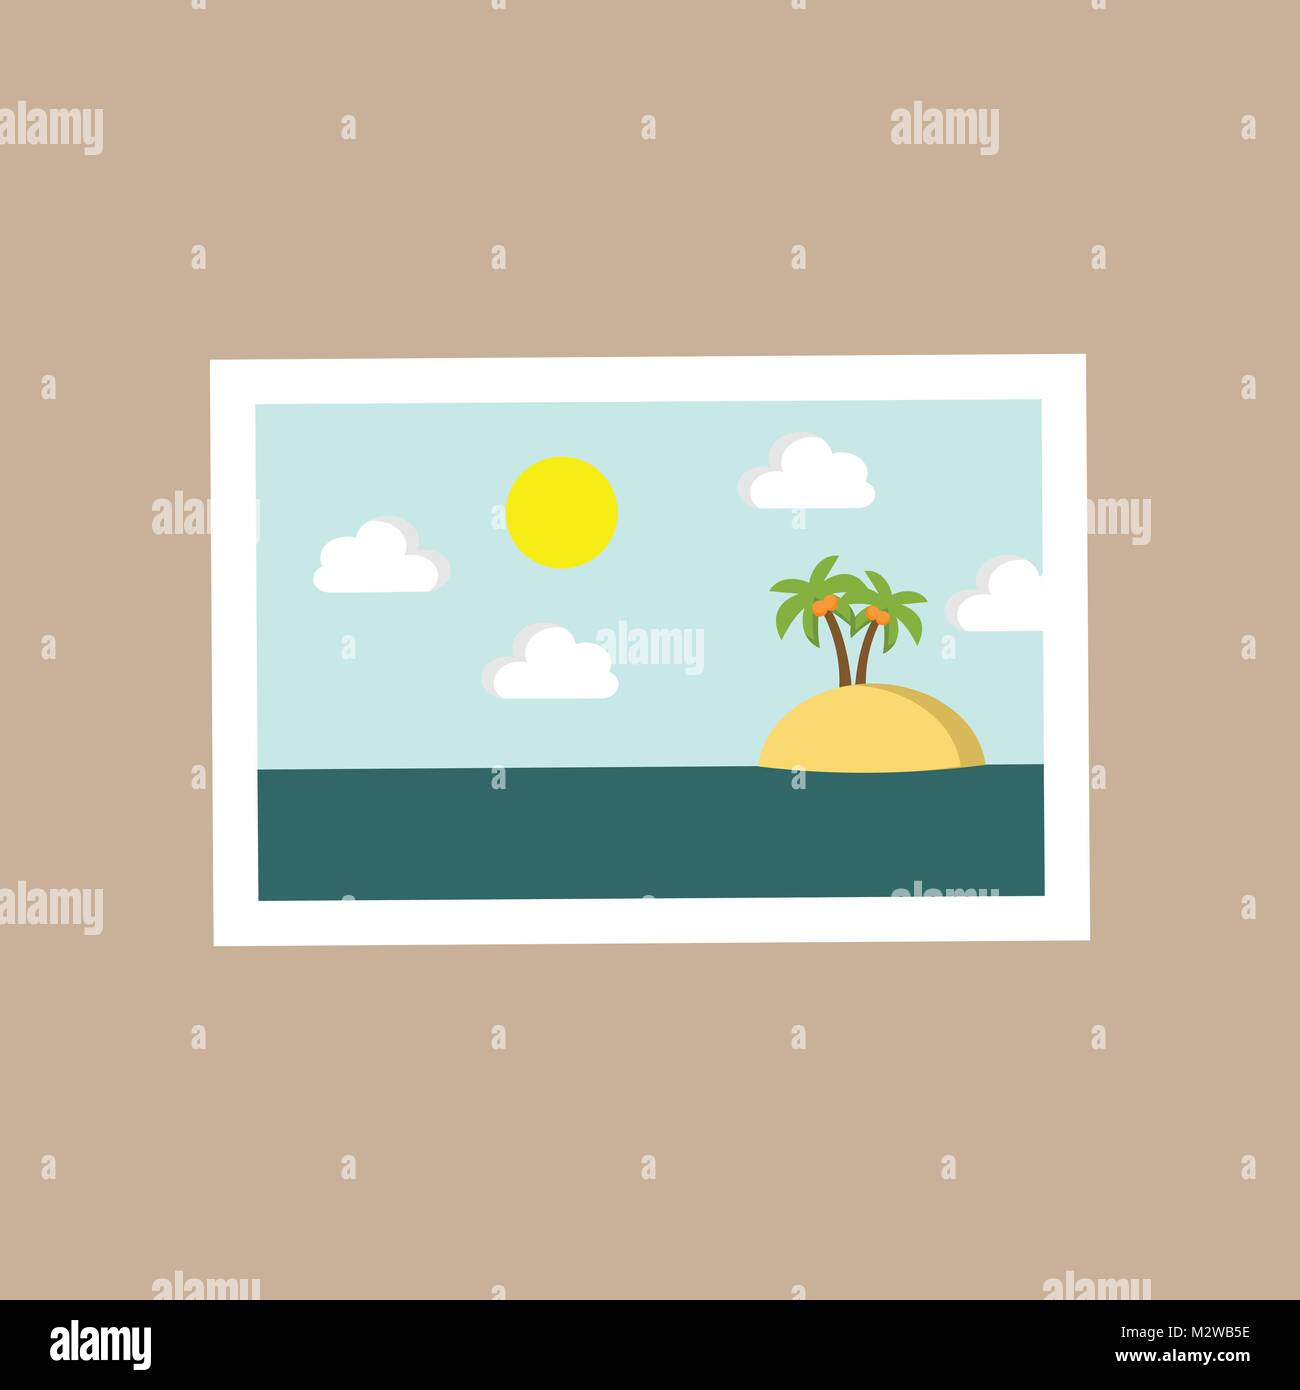 Small Island Portrait Scenery Vector Illustration Graphic Design - Stock Vector